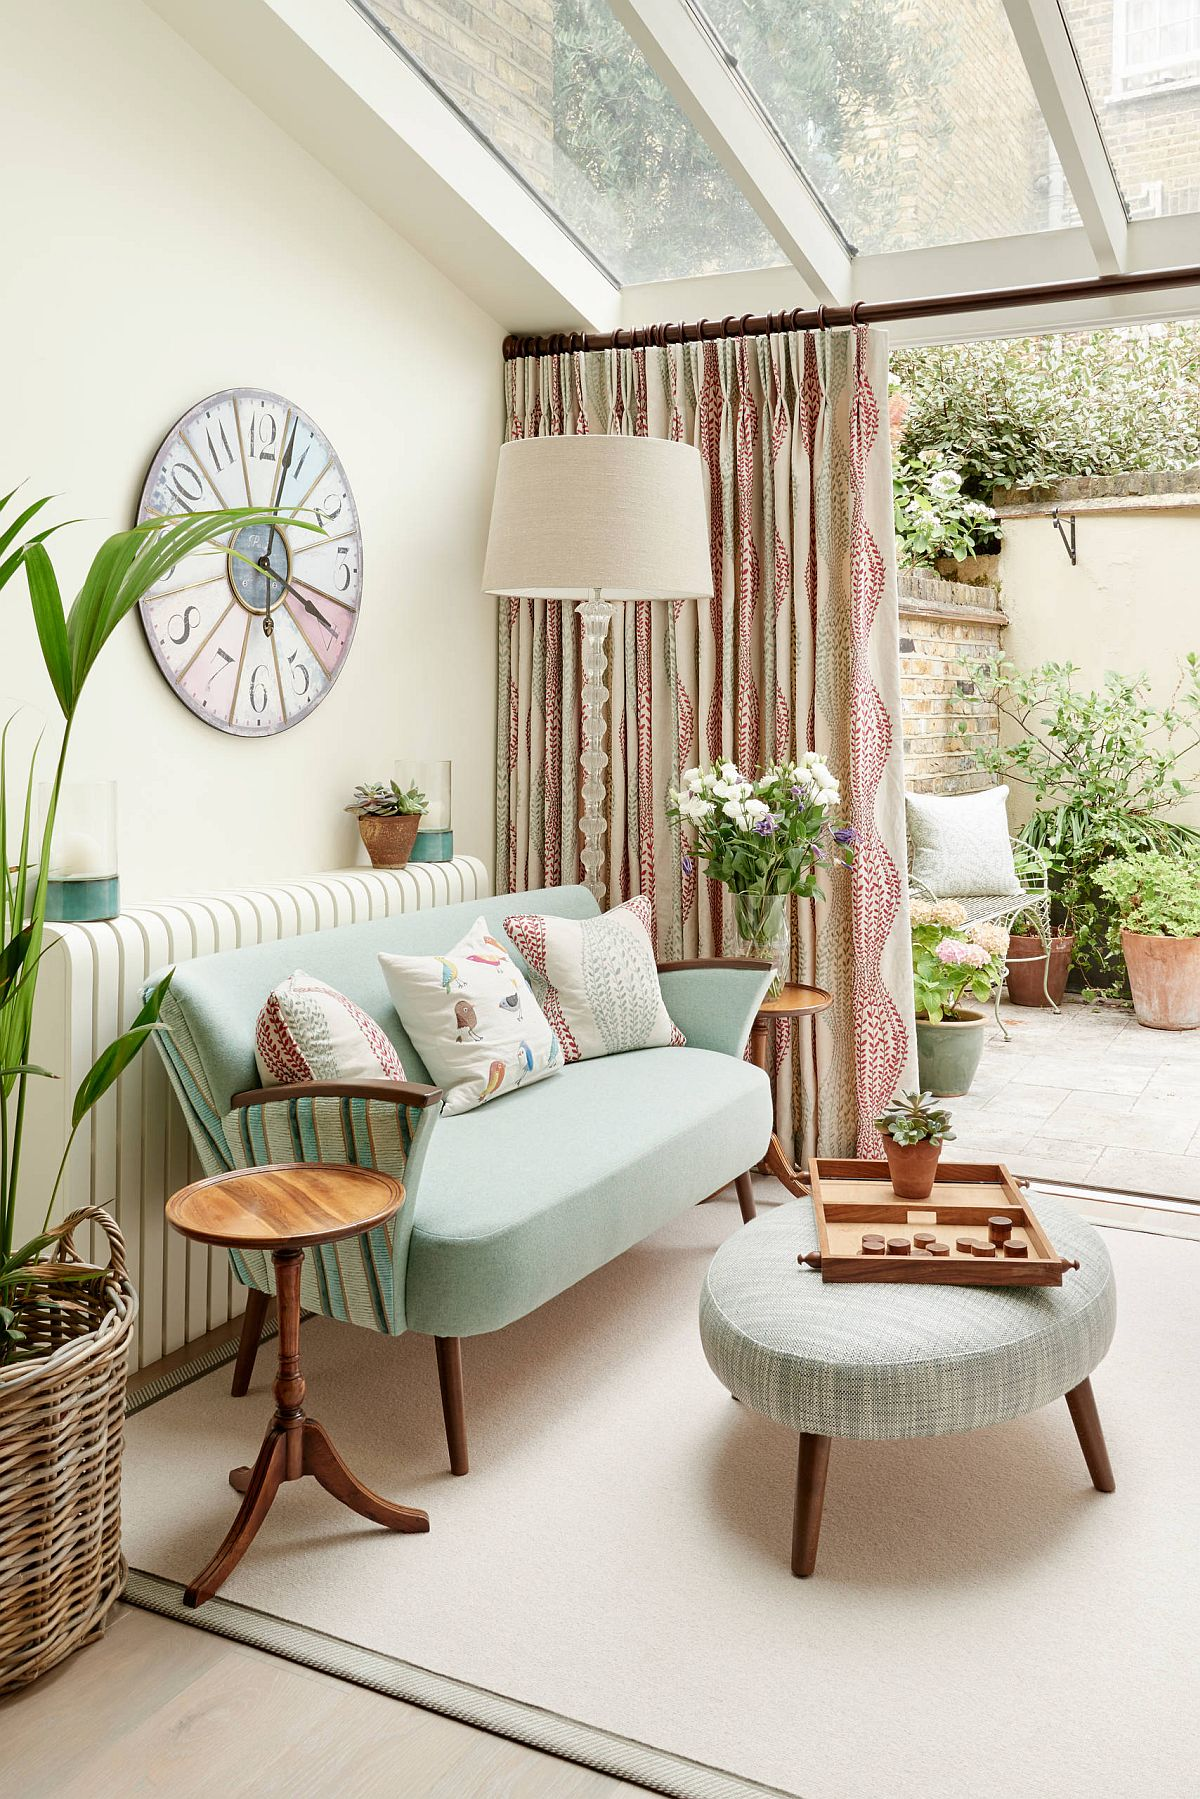 Use drapes to separate the small sunroom from the terrace and garden outside